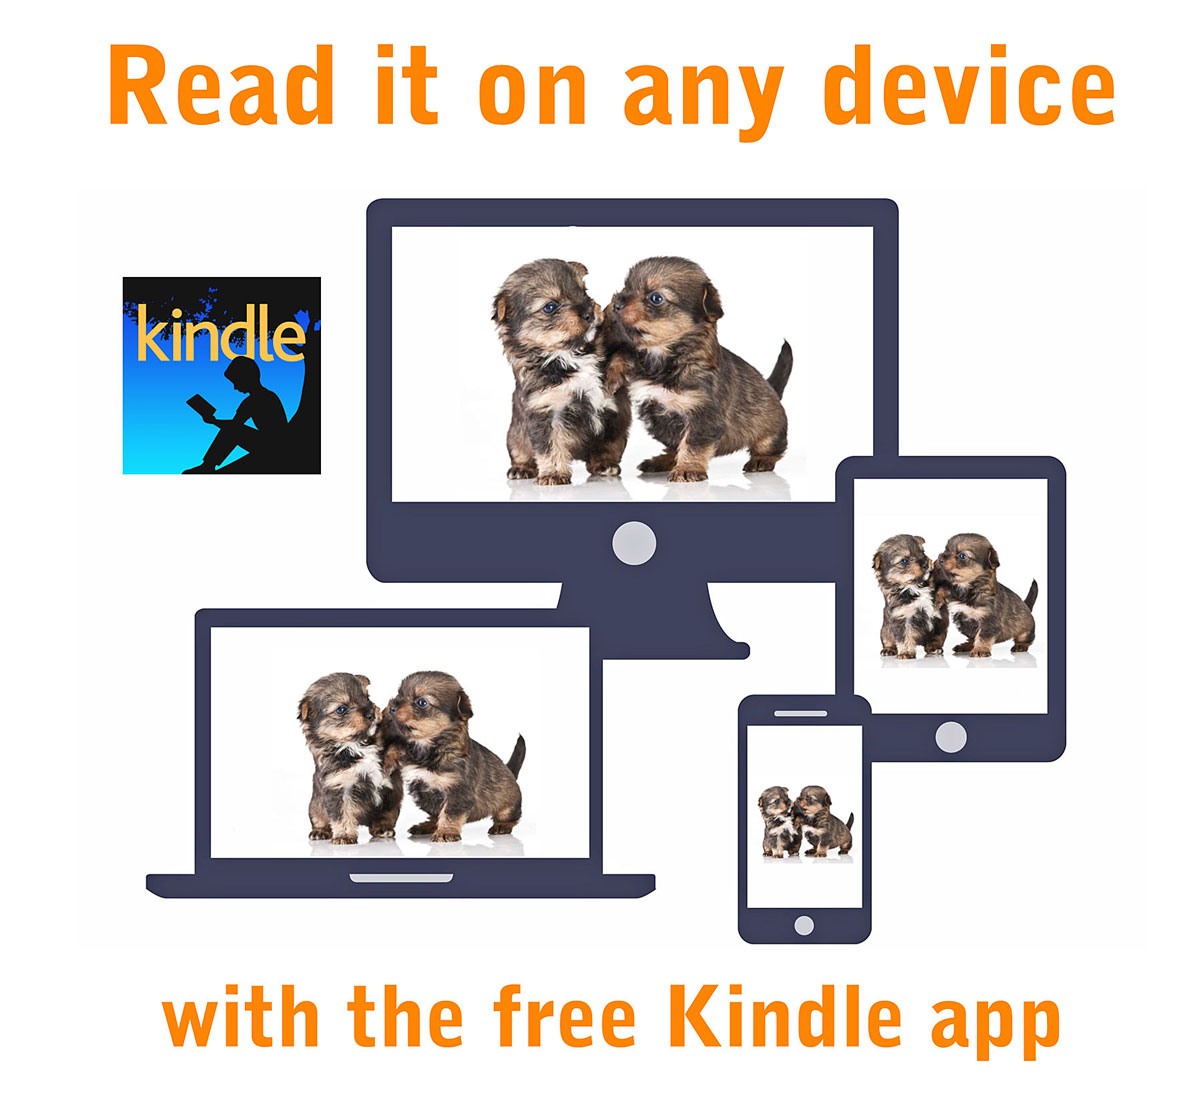 read this ebook on any device